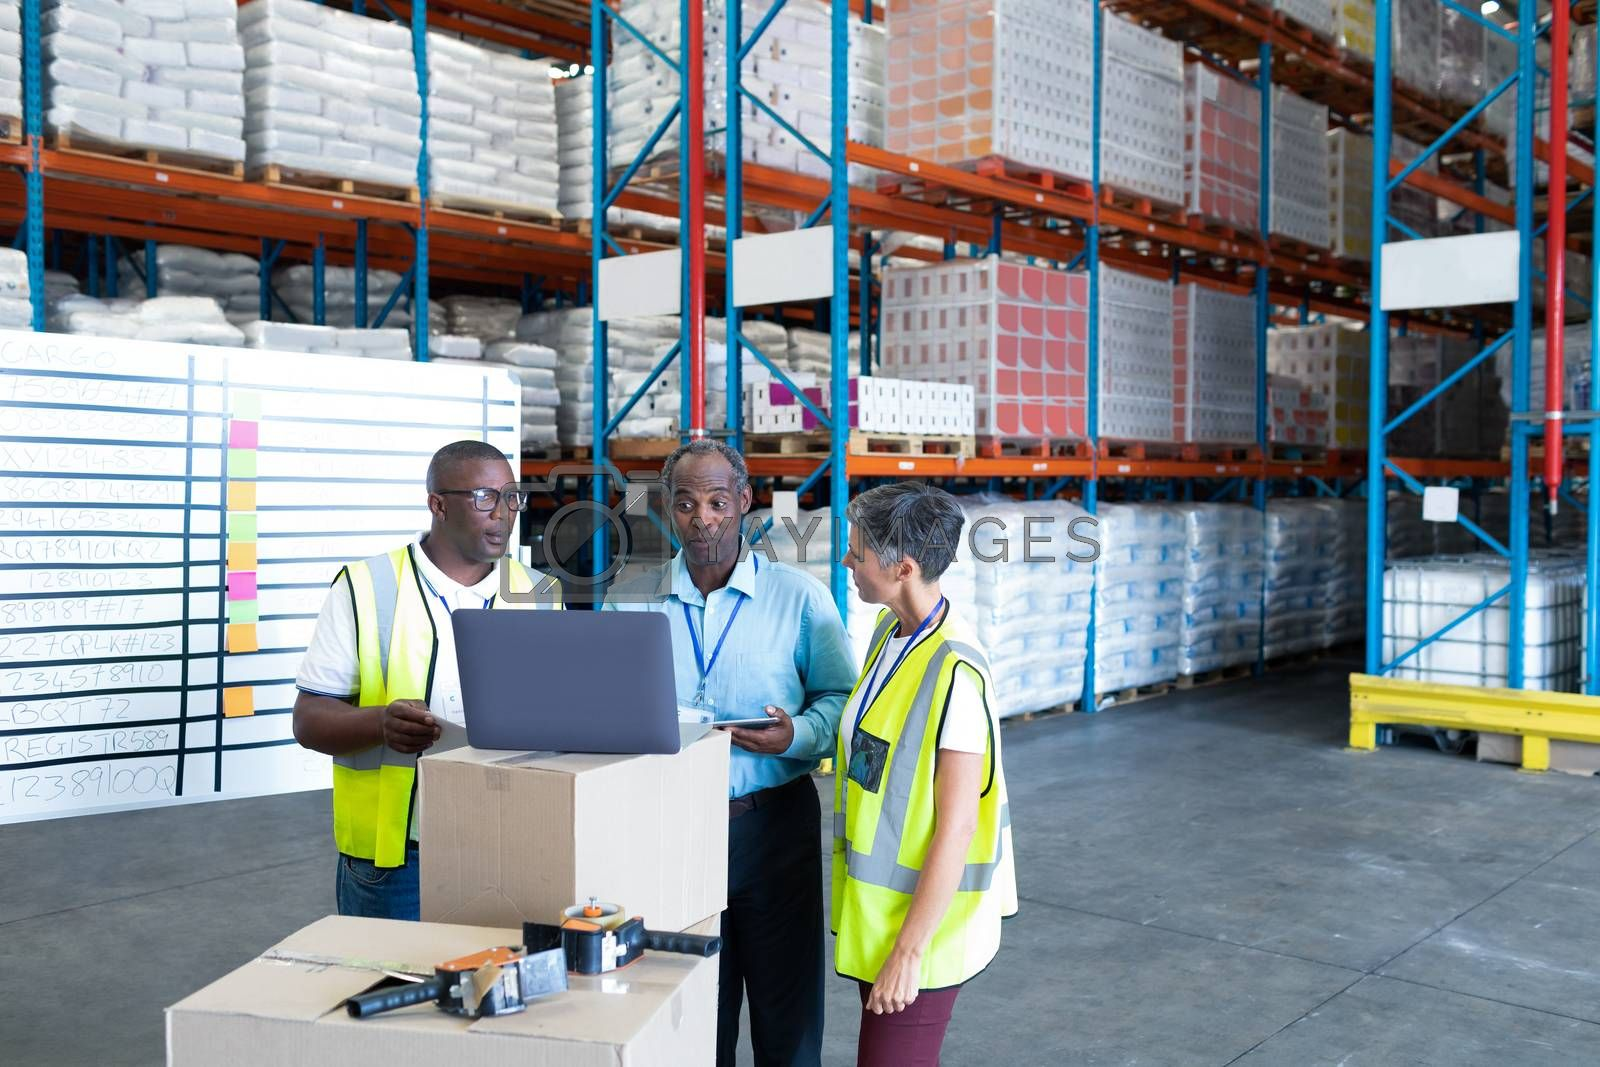 Front view of mature diverse warehouse staffs discussing over laptop in warehouse. This is a freight transportation and distribution warehouse. Industrial and industrial workers concept